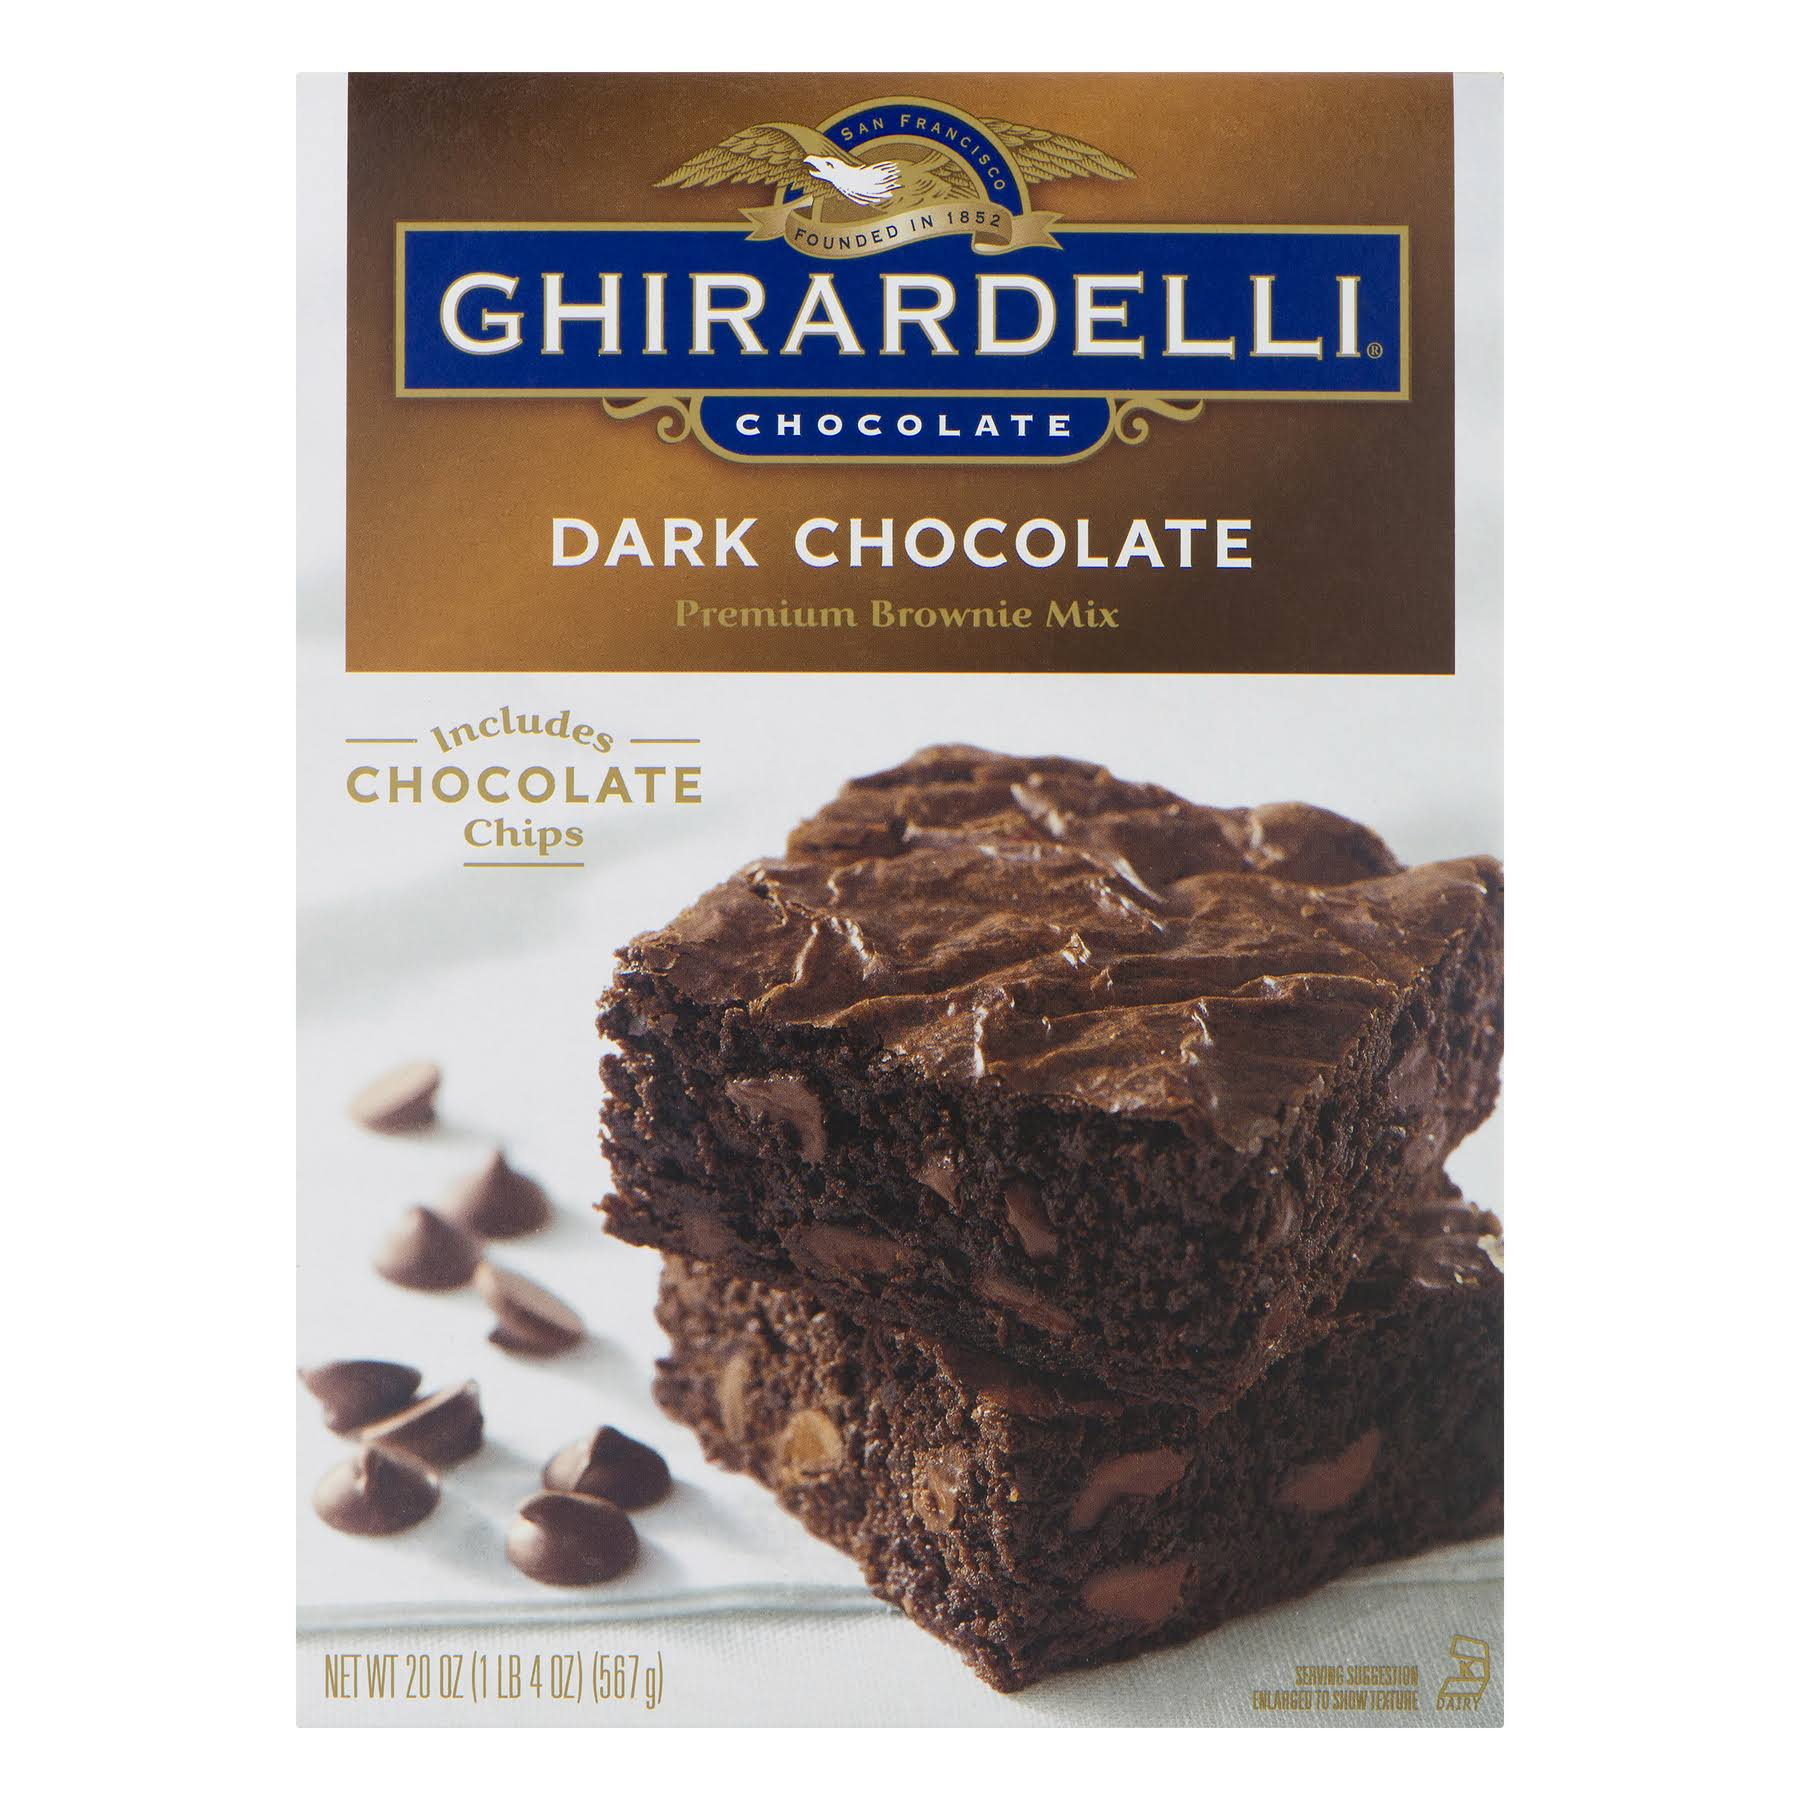 Ghirardelli Dark Chocolate Premium Brownie Mix - 20oz